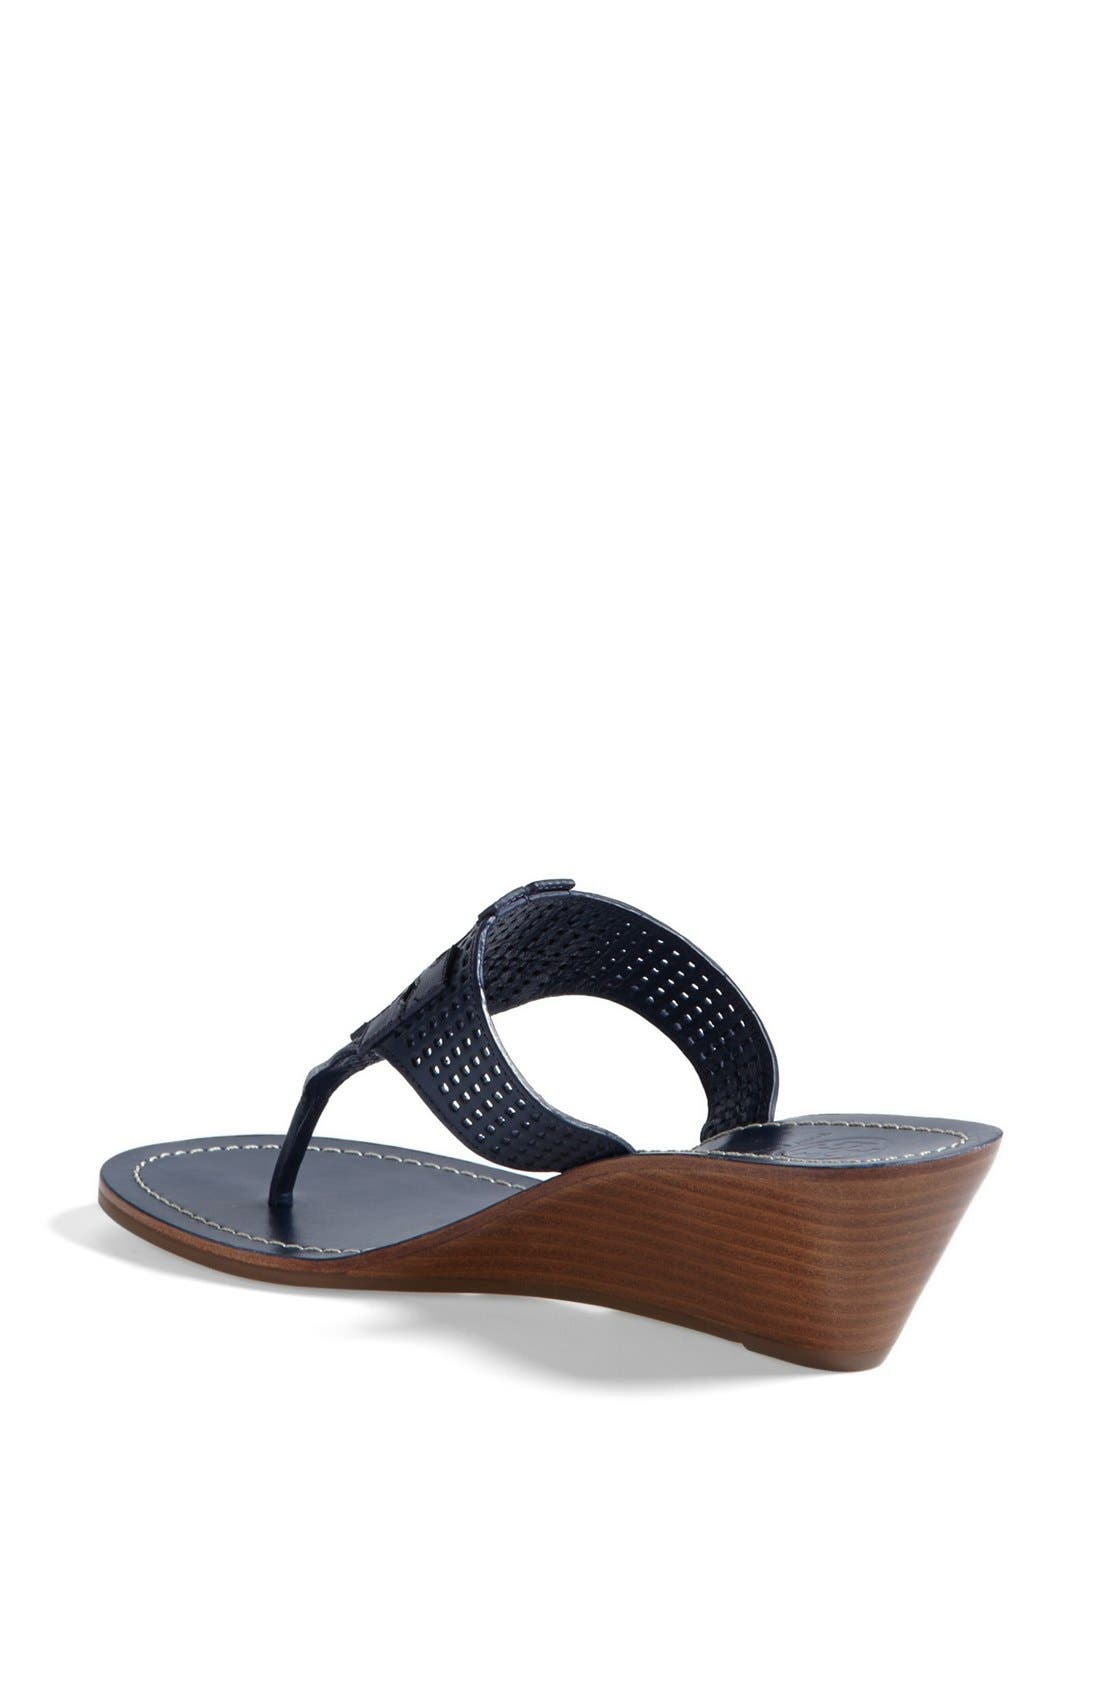 Alternate Image 2  - Tory Burch 'Mcfee' Wedge Sandal (Online Only)